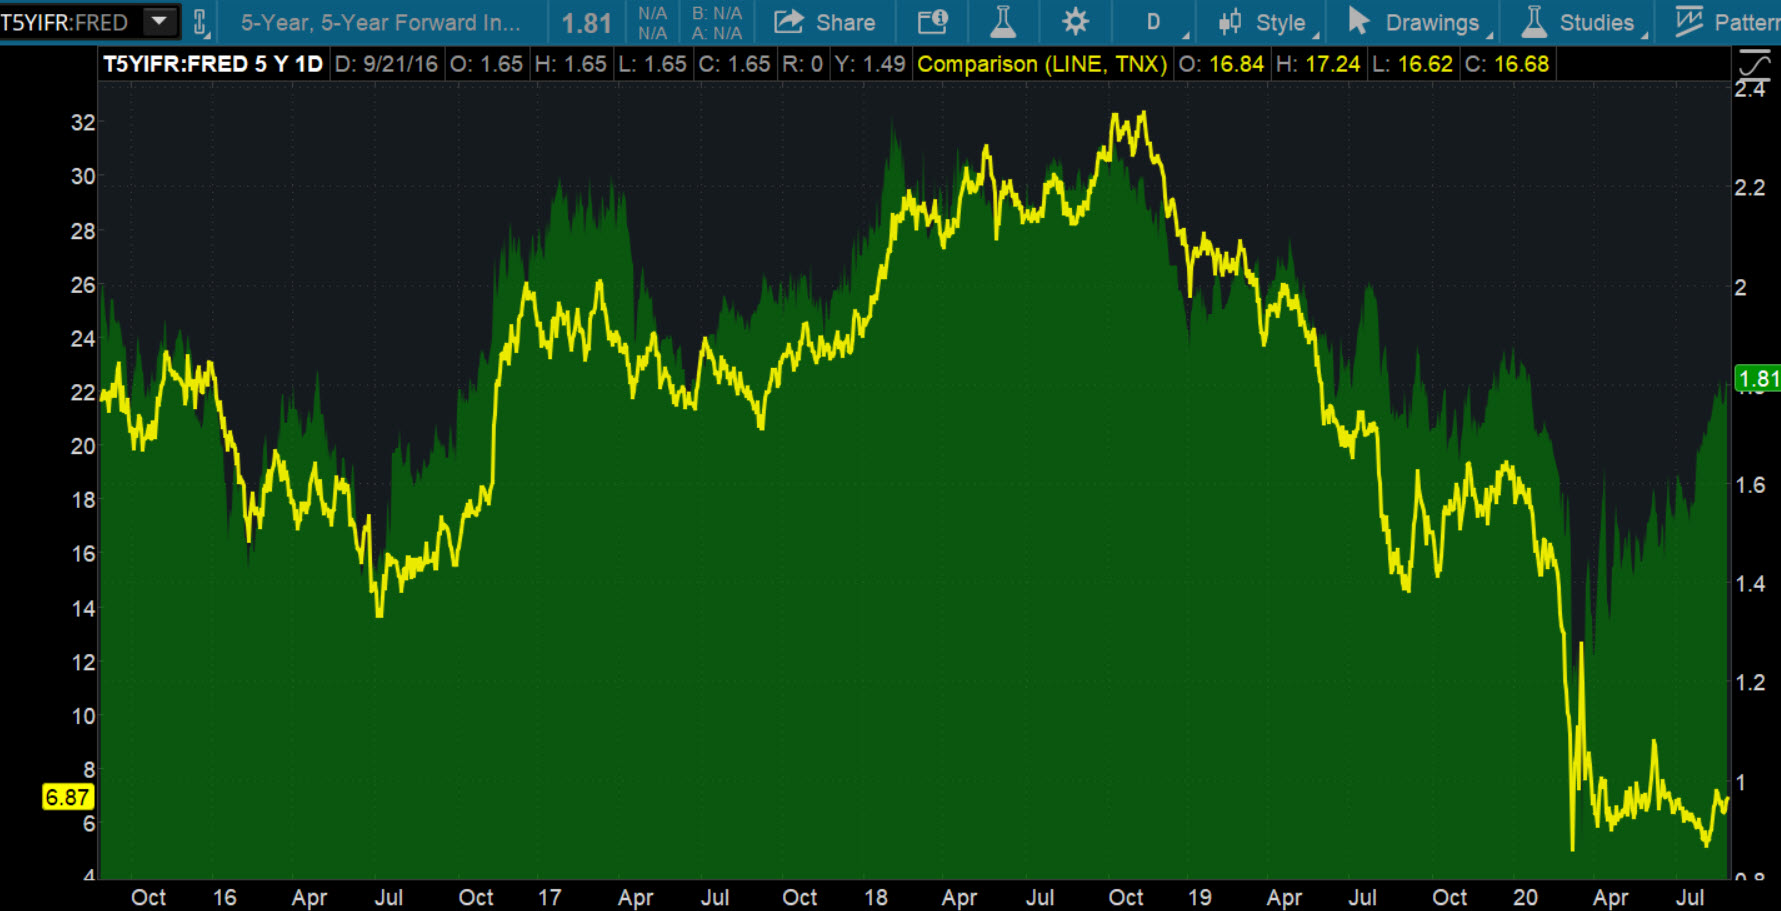 chart showing relationship between inflation and treasury yields